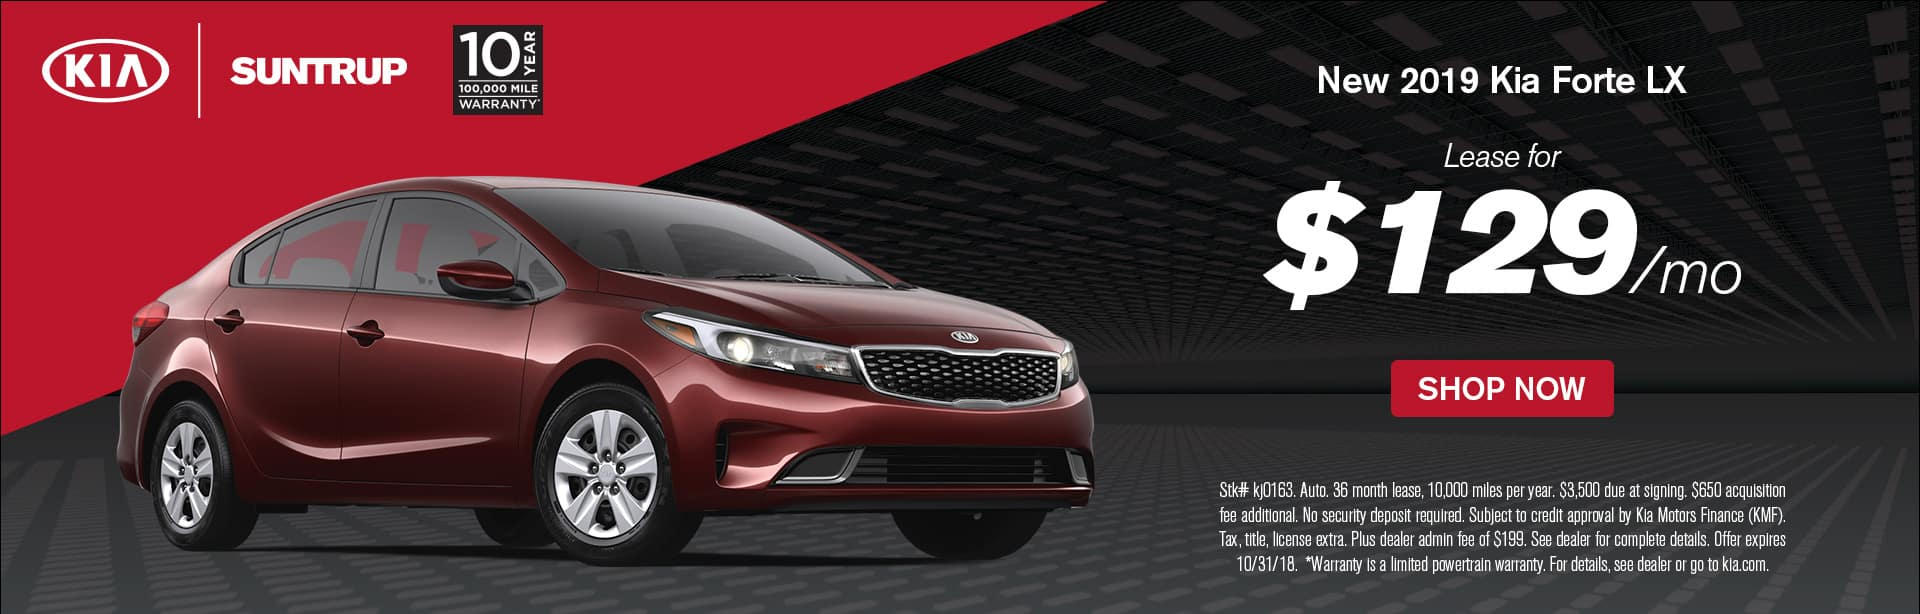 Suntrup Kia South | Kia Dealer in St. Louis, MO